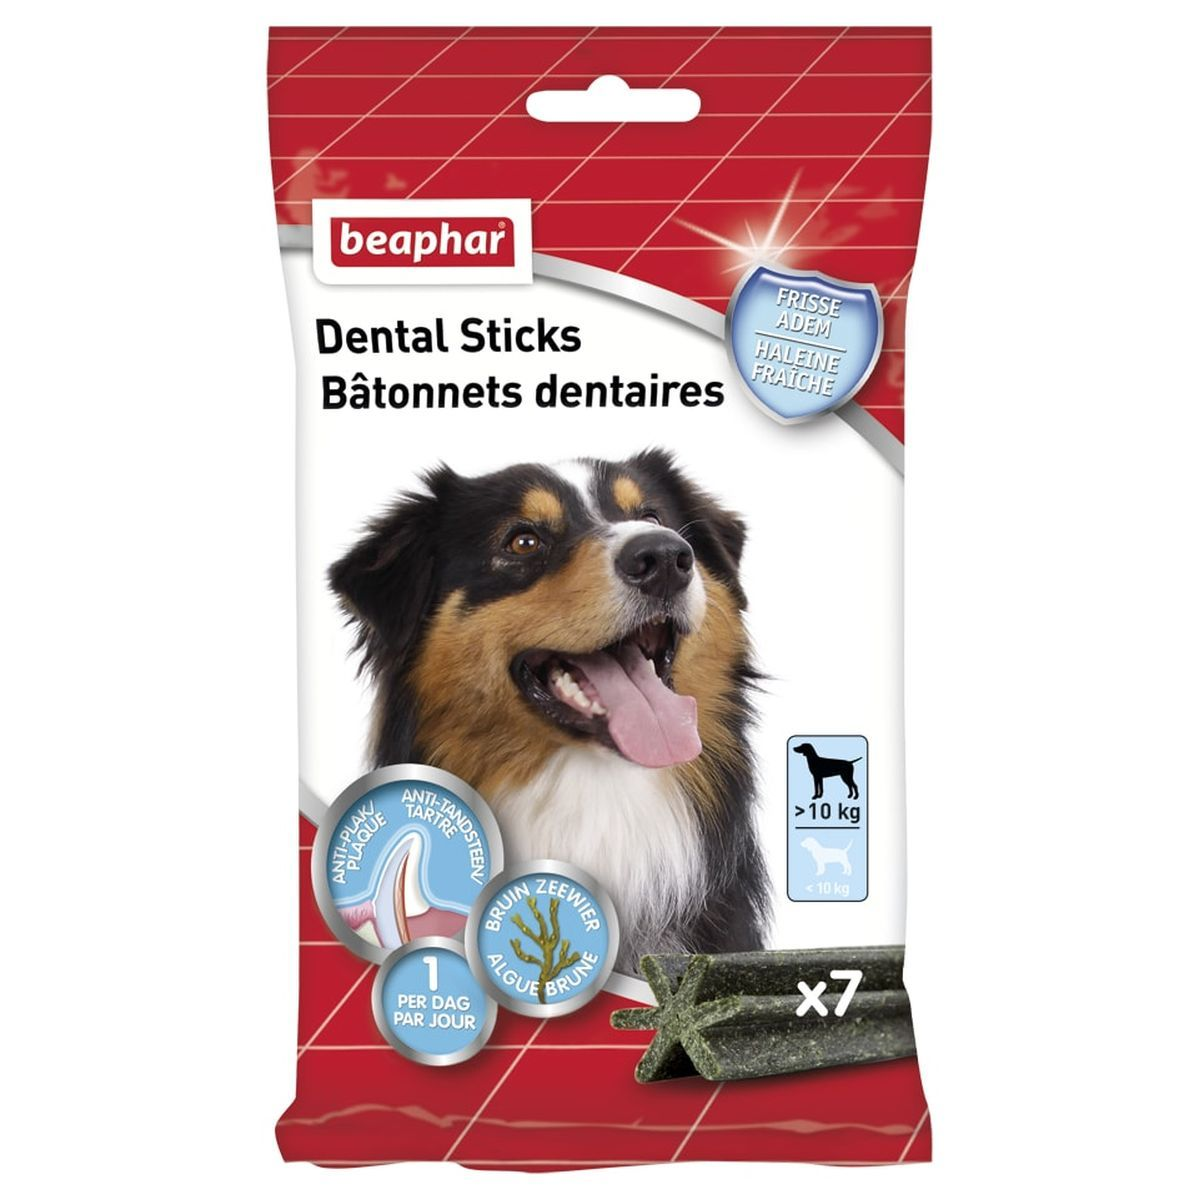 Beaphar Dental Sticks middel / grote hond 1 x 7 sticks